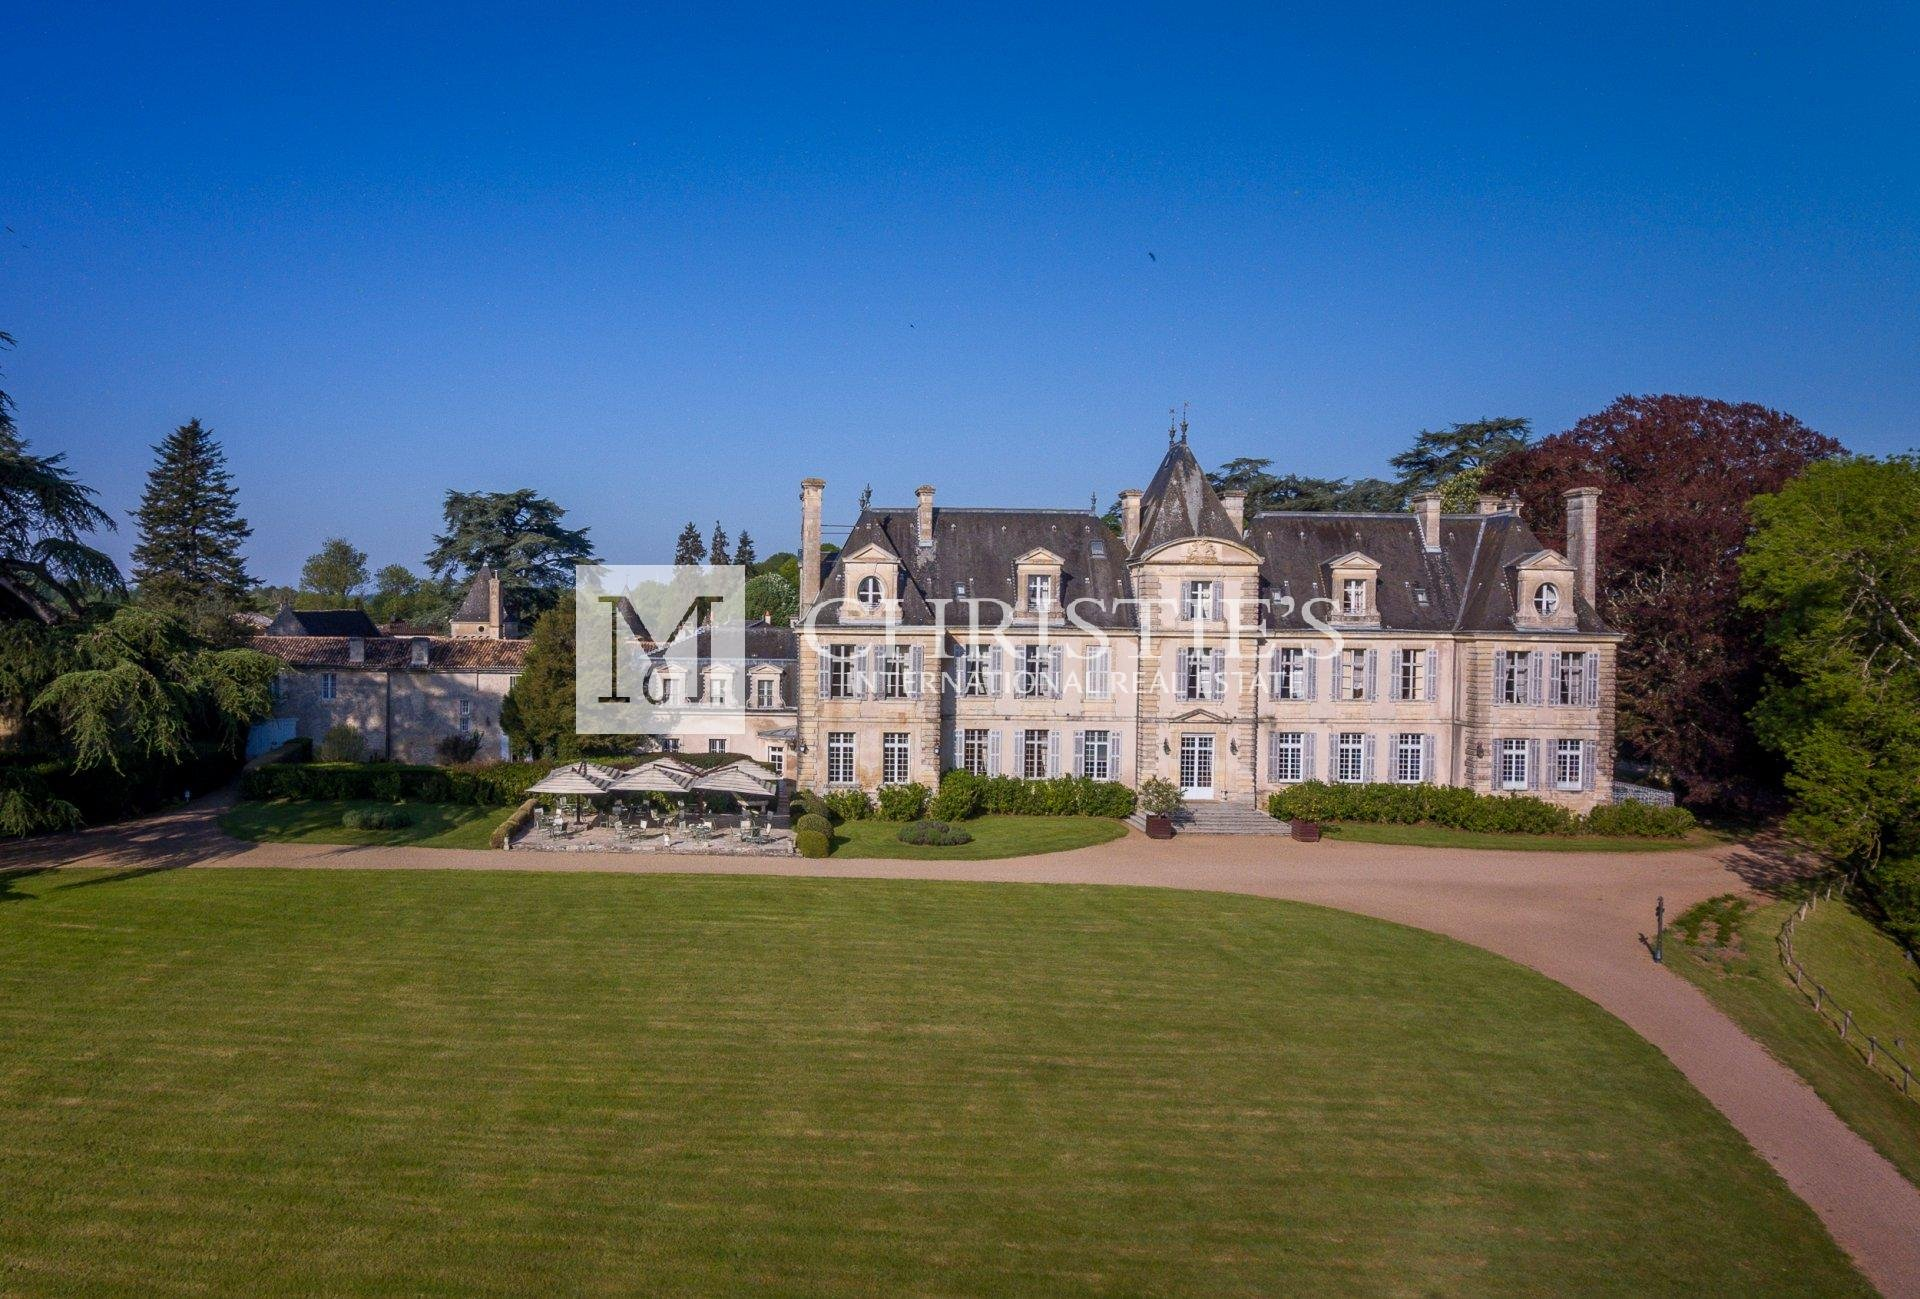 Large chateau with grass lawn